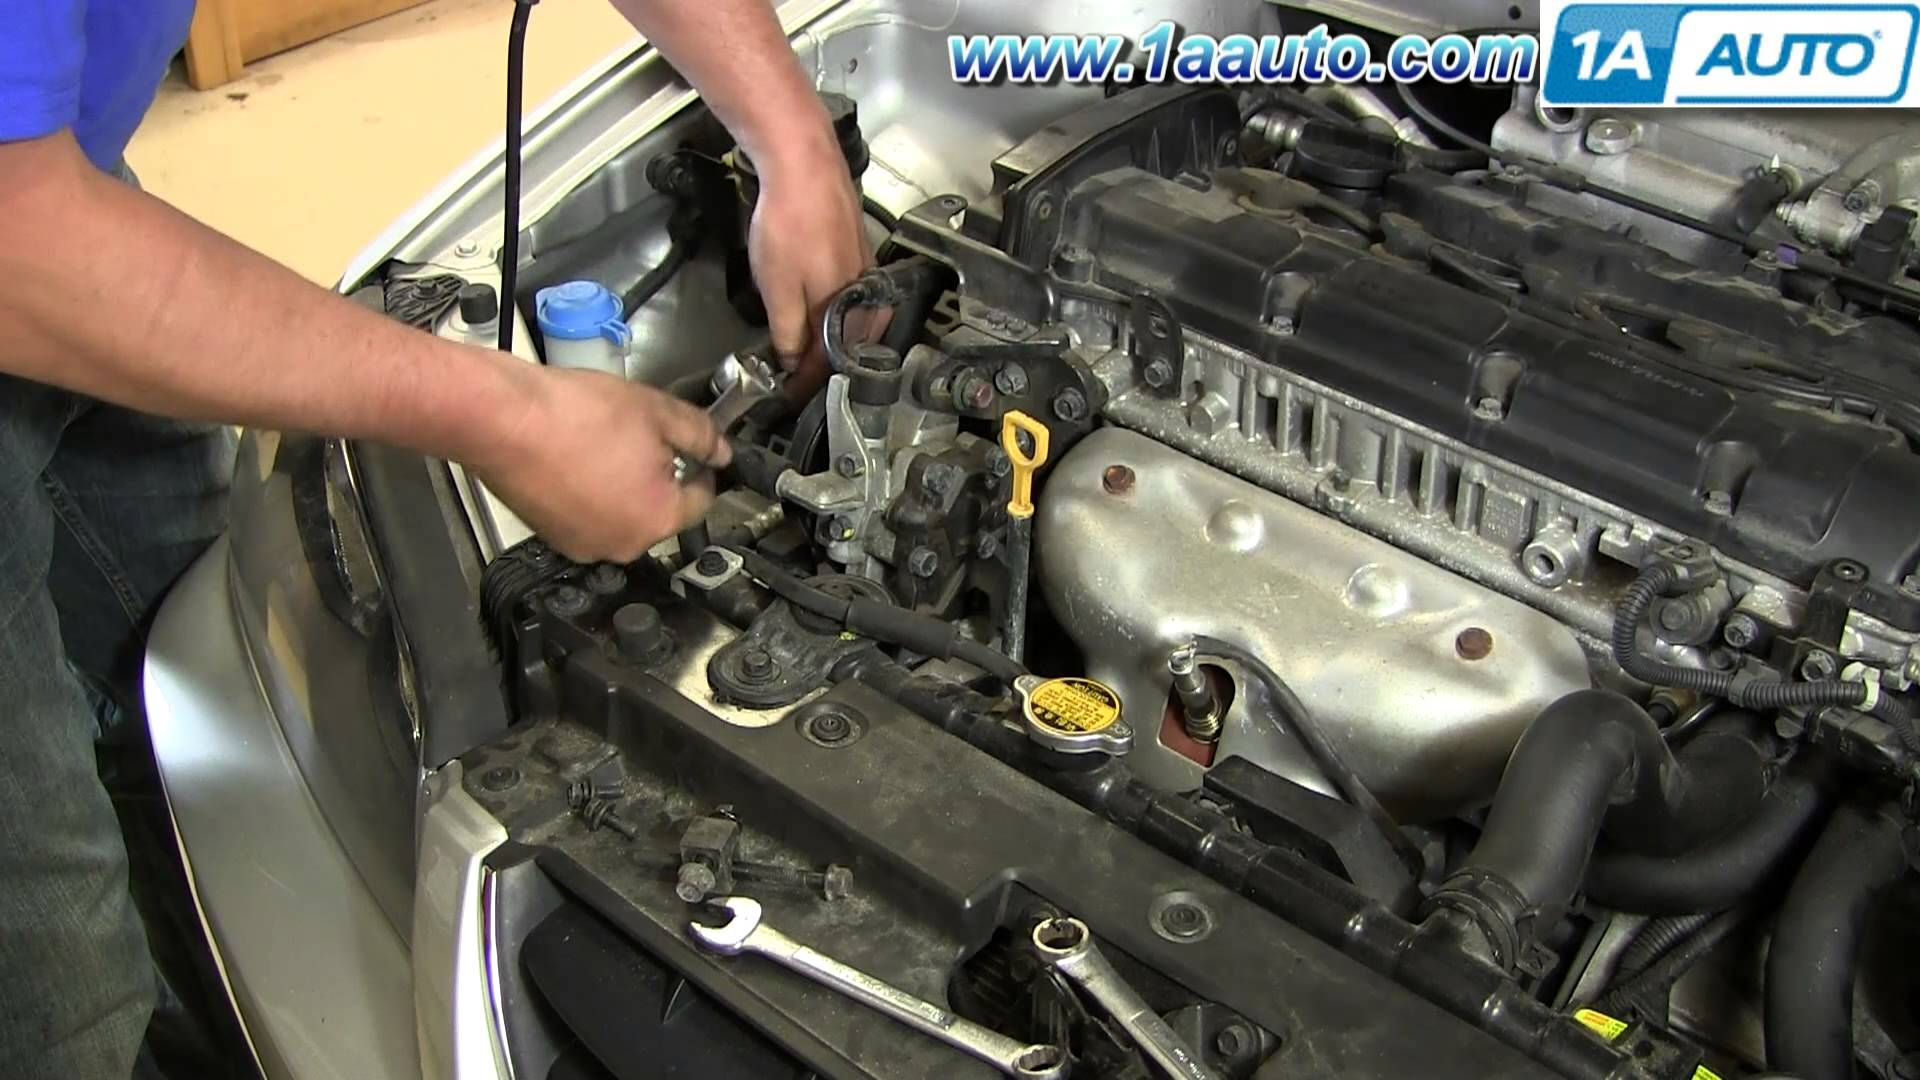 How To Install Replace Power Steering Belt 2001 06 Hyundai Elantra Hyundai Elantra Elantra Hyundai